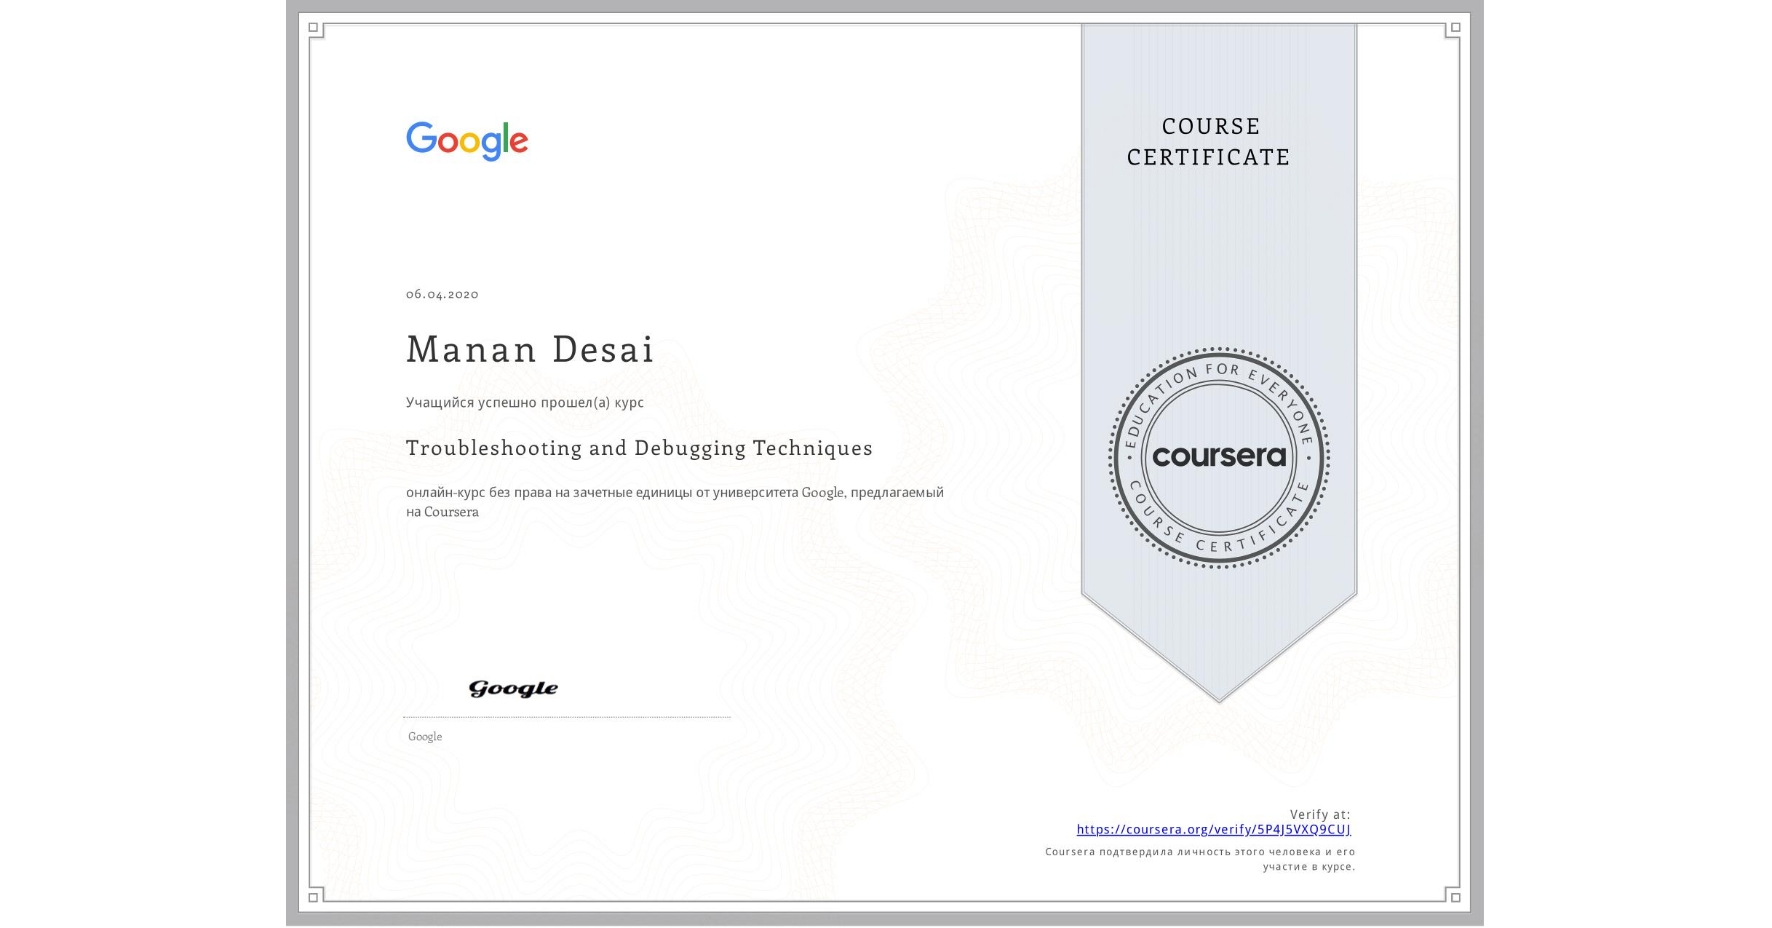 View certificate for Dhhyey Desai, Troubleshooting and Debugging Techniques, an online non-credit course authorized by Google and offered through Coursera